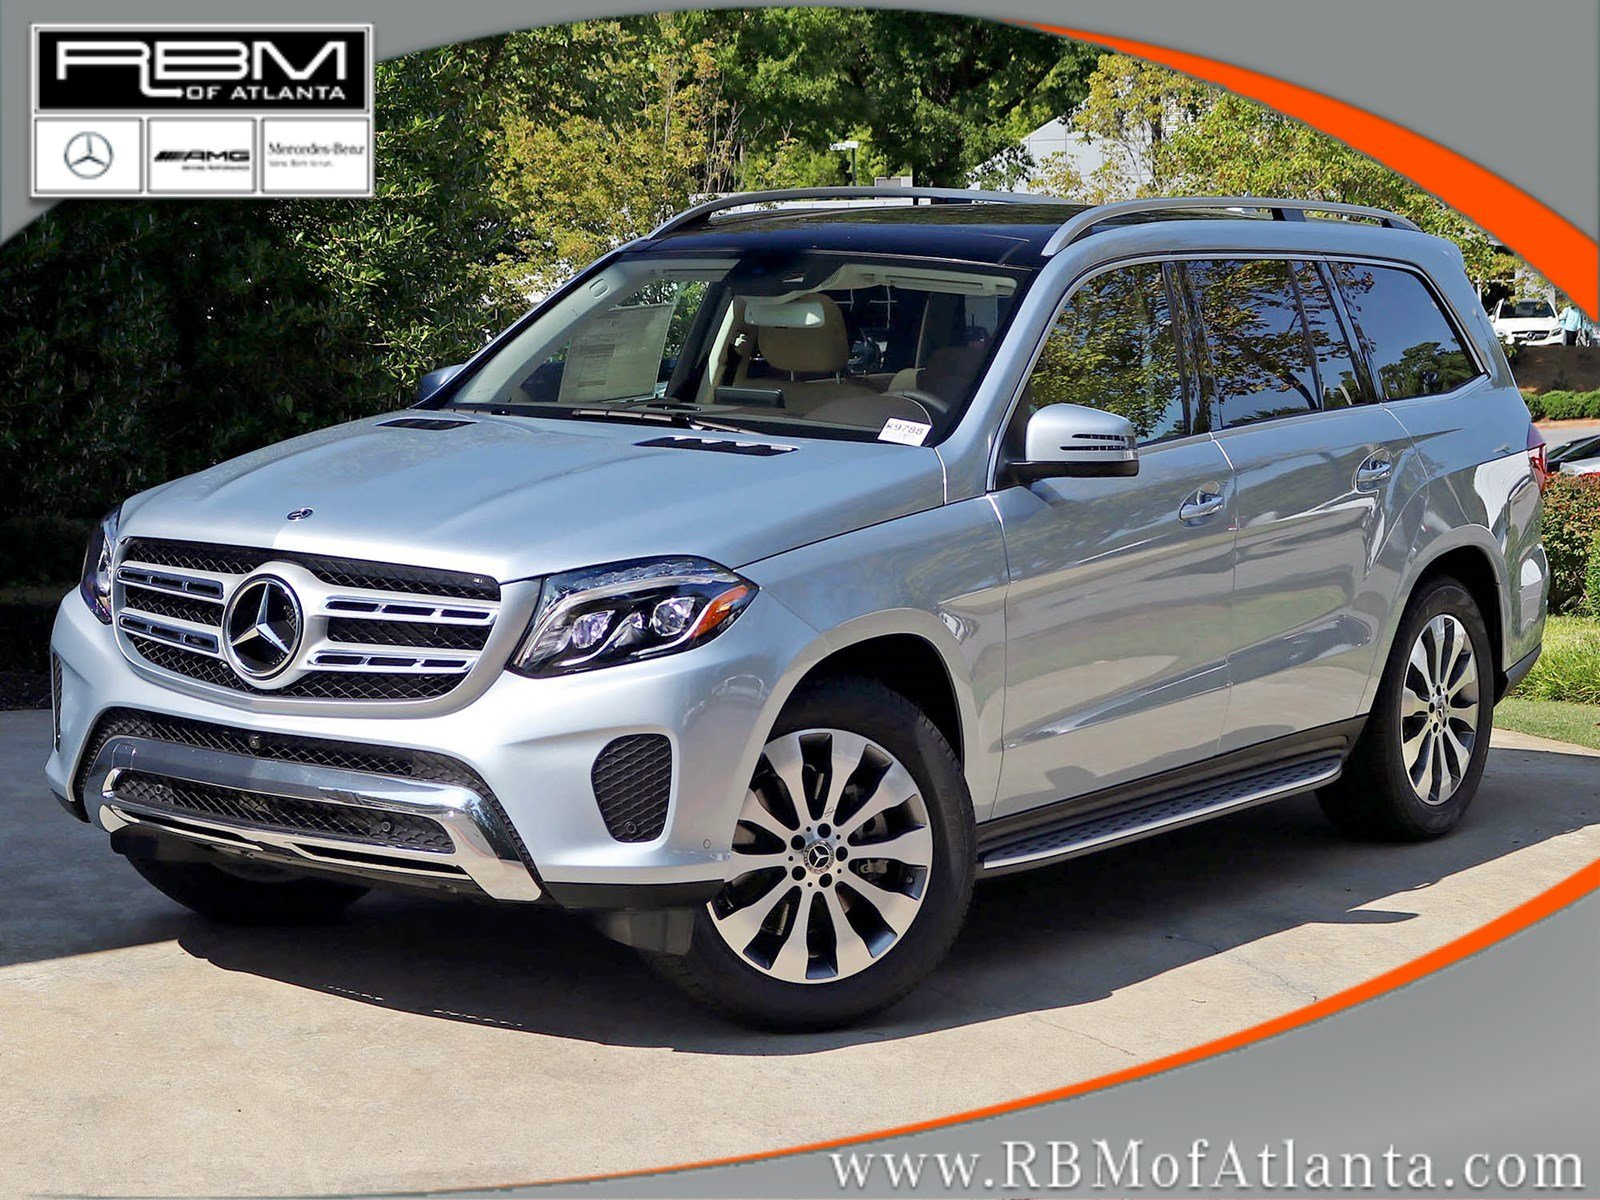 New 2018 mercedes benz gls gls 450 suv in atlanta k9788 for Rbm mercedes benz